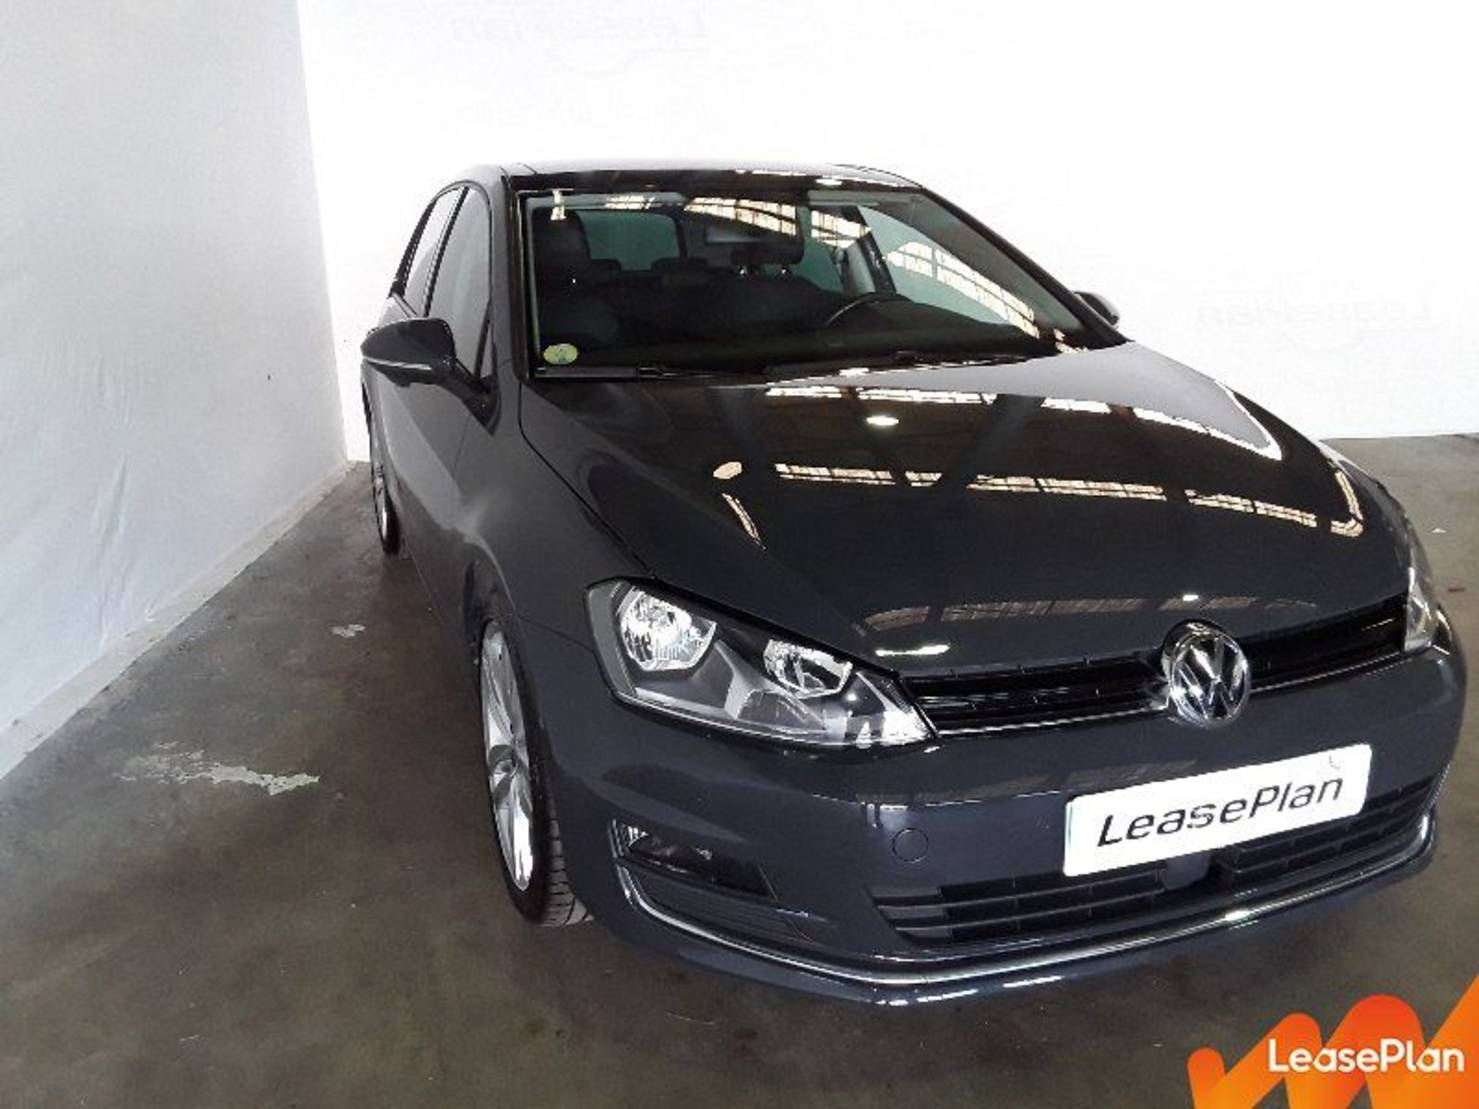 Volkswagen Golf 2.0 TDI 150 BlueMotion Technology FAP, Carat DSG6 detail2